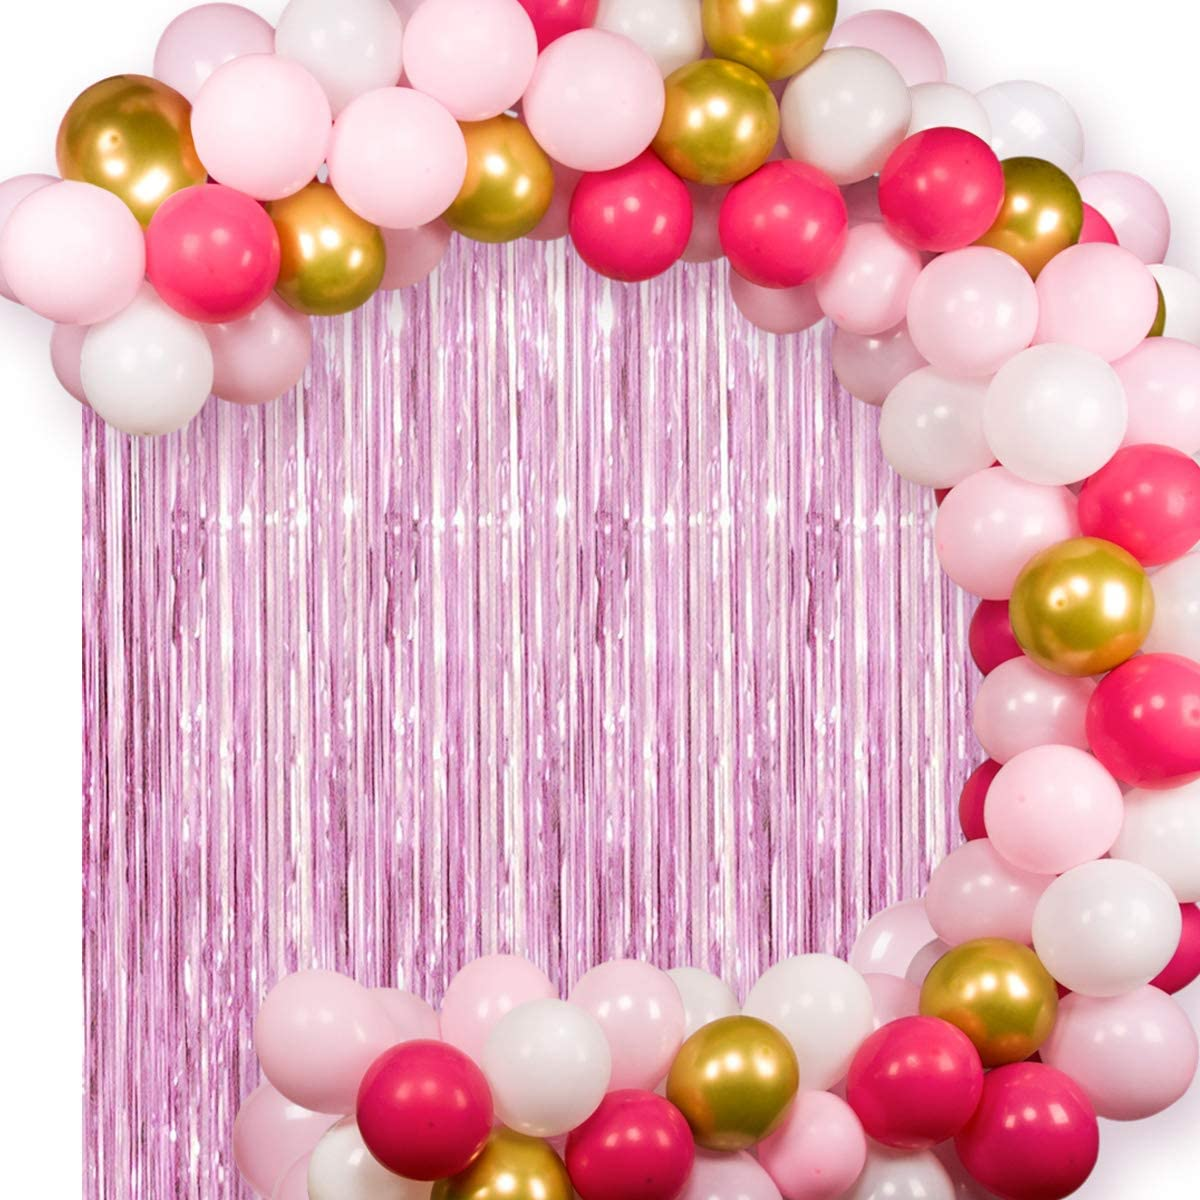 JOYYPOP Pink Balloon Garland Kit with Pink Fringe Curtain White Pink Gold Balloons for Pink Baby Shower Party Wedding Party